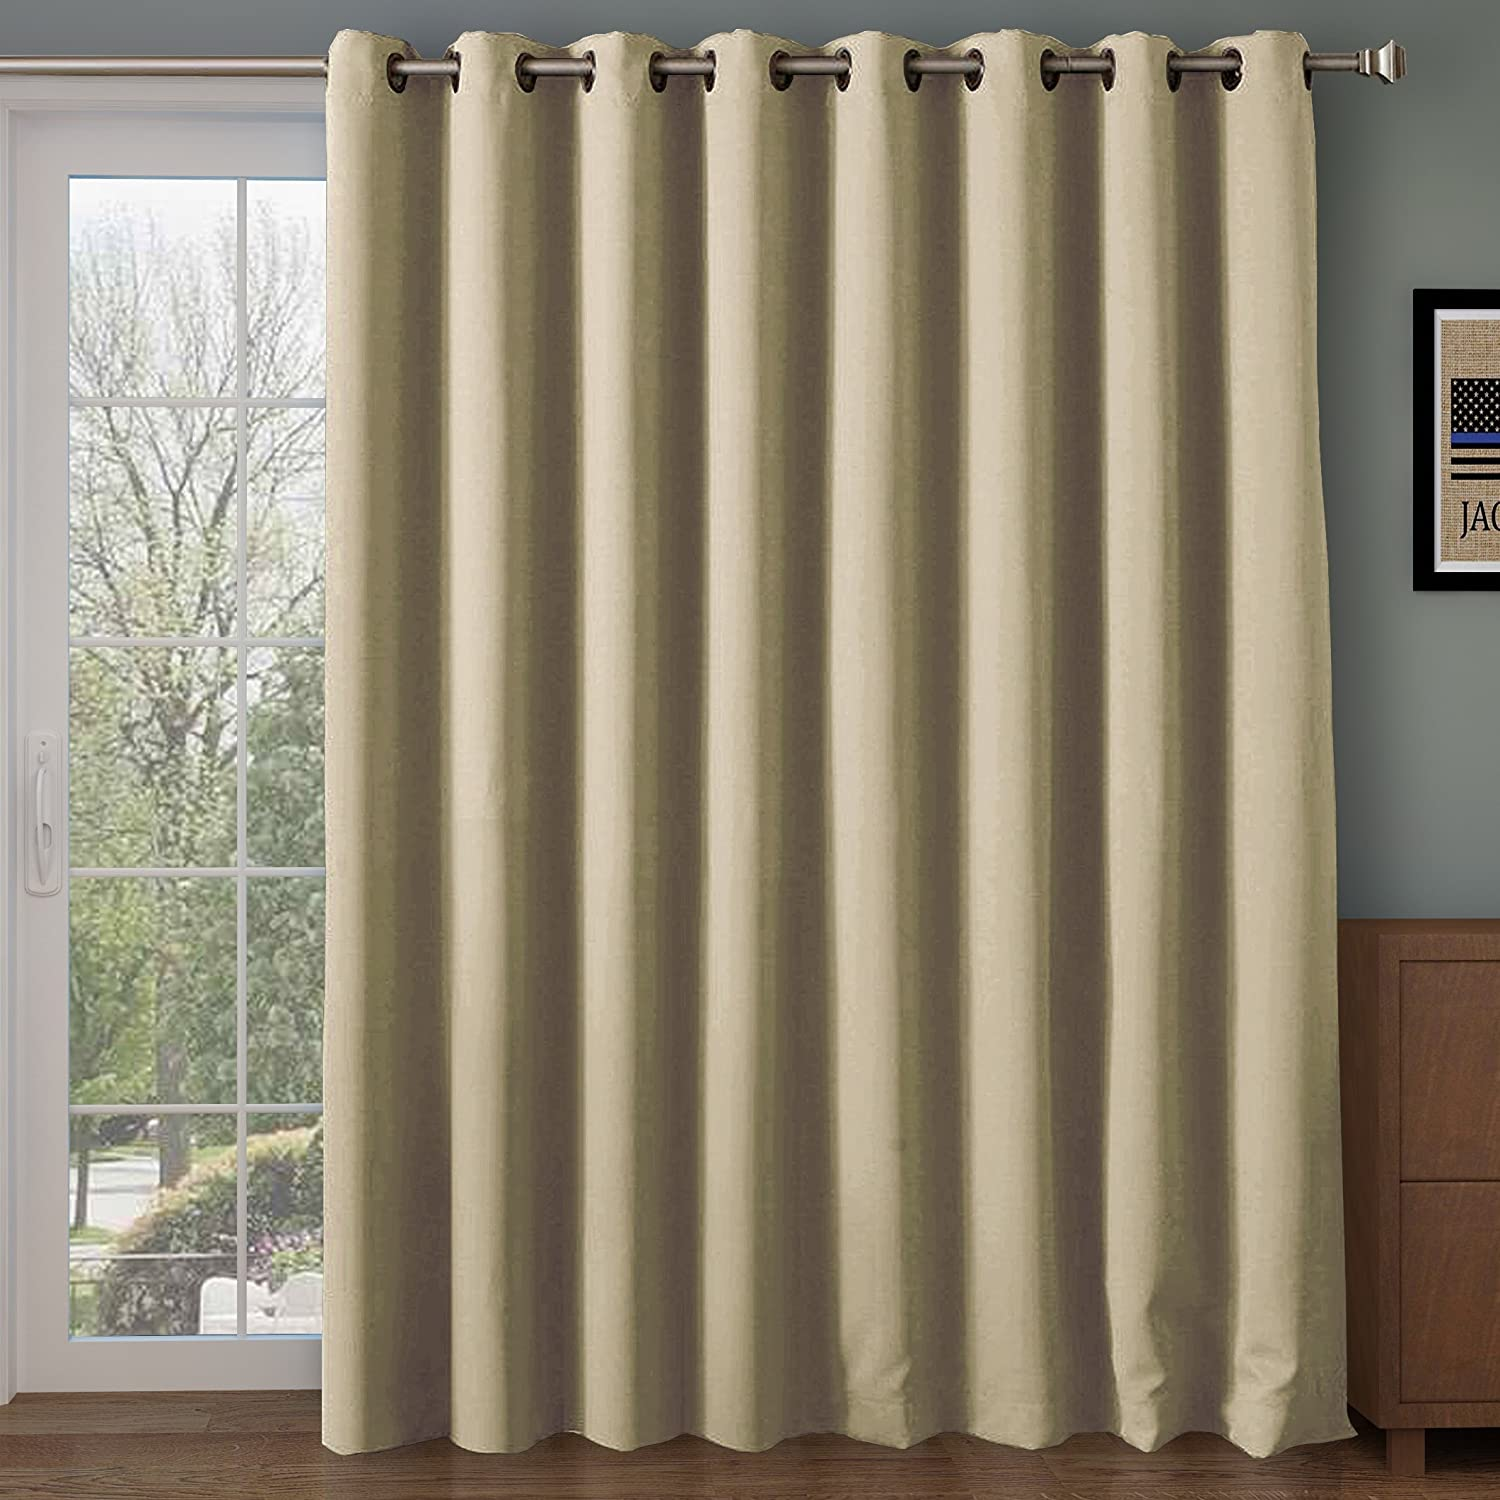 door black for glass itchen superb r of doors blinds ideas shades vertical solutions depot curtains cute curtain gorgeous sliding fantastic home best patio